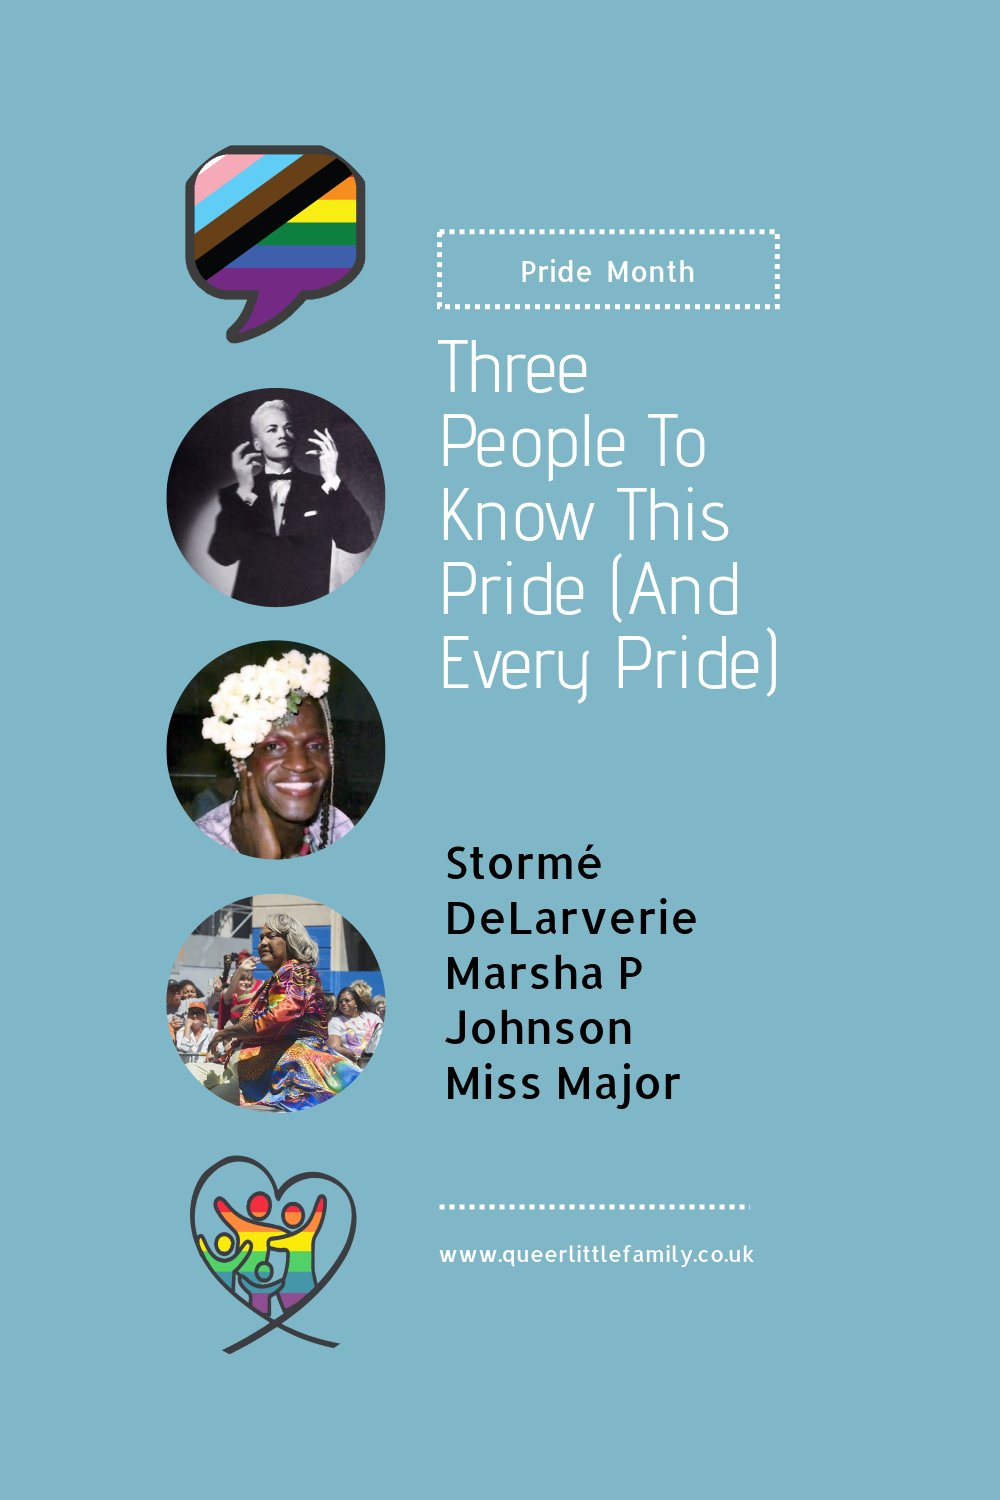 Three People To Know This Pride (And Every Pride)